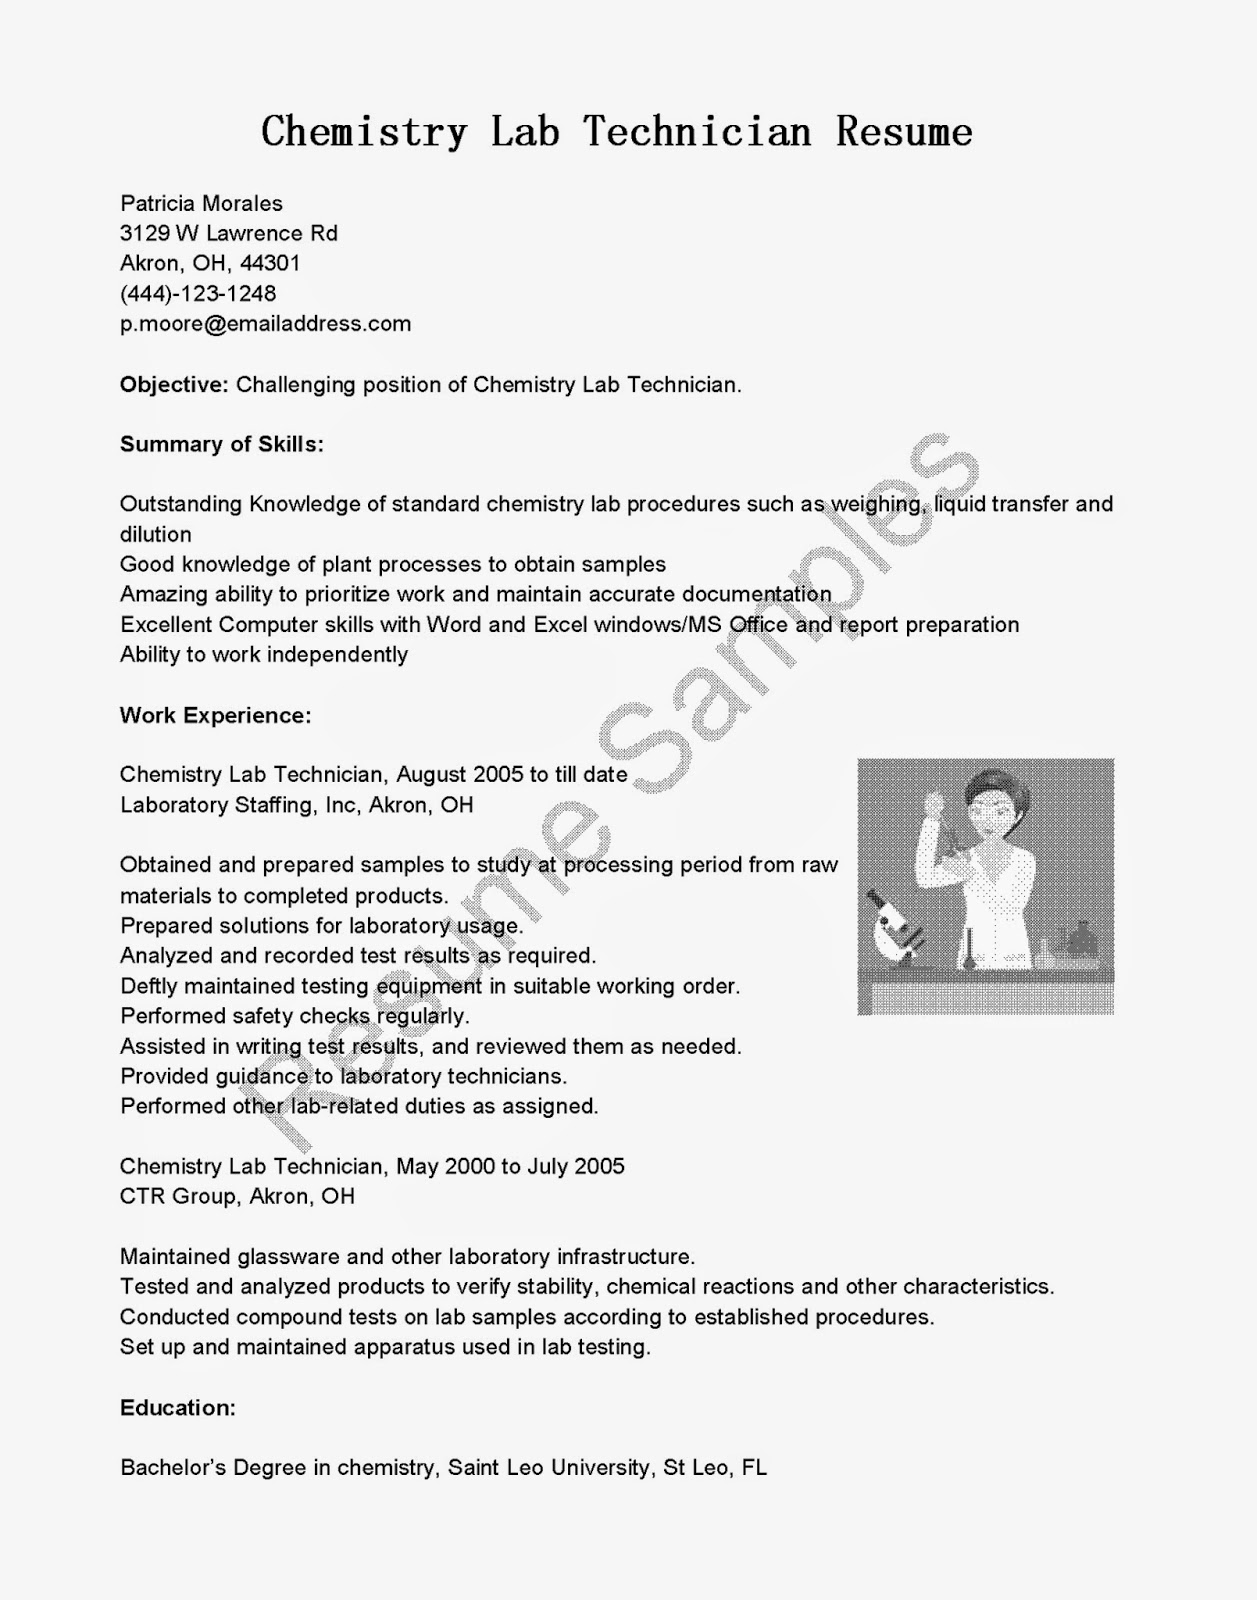 School science technician resume